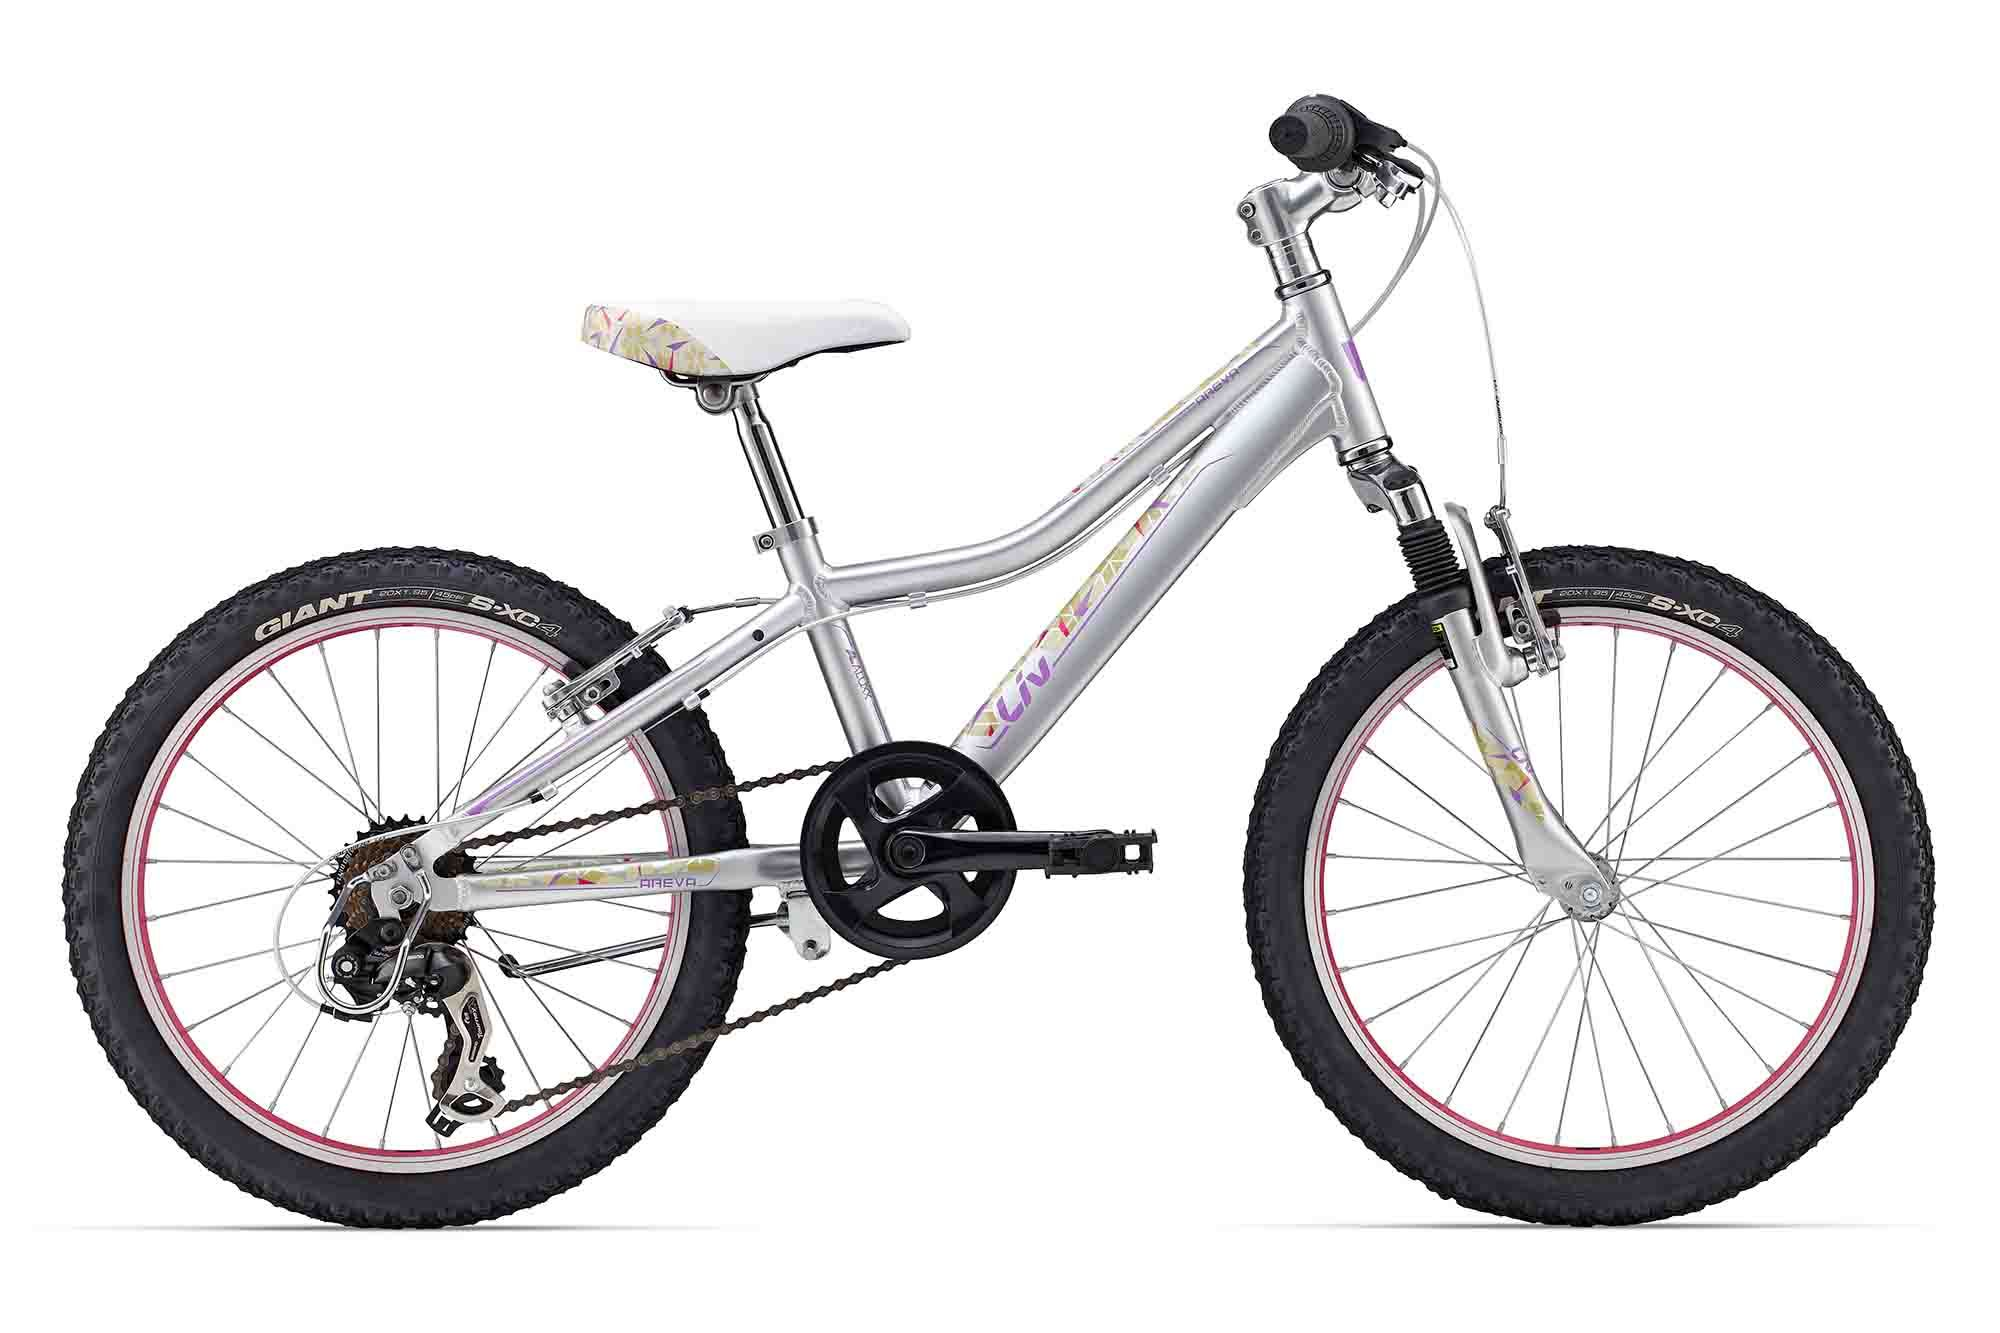 Girls Areva 20 Price 299 00 Beginners Mountain Bike Featuring 7 Speed Gearing Front Suspension Alloy Frame Chain Derailleur Kids Bike Bike Riding Giants